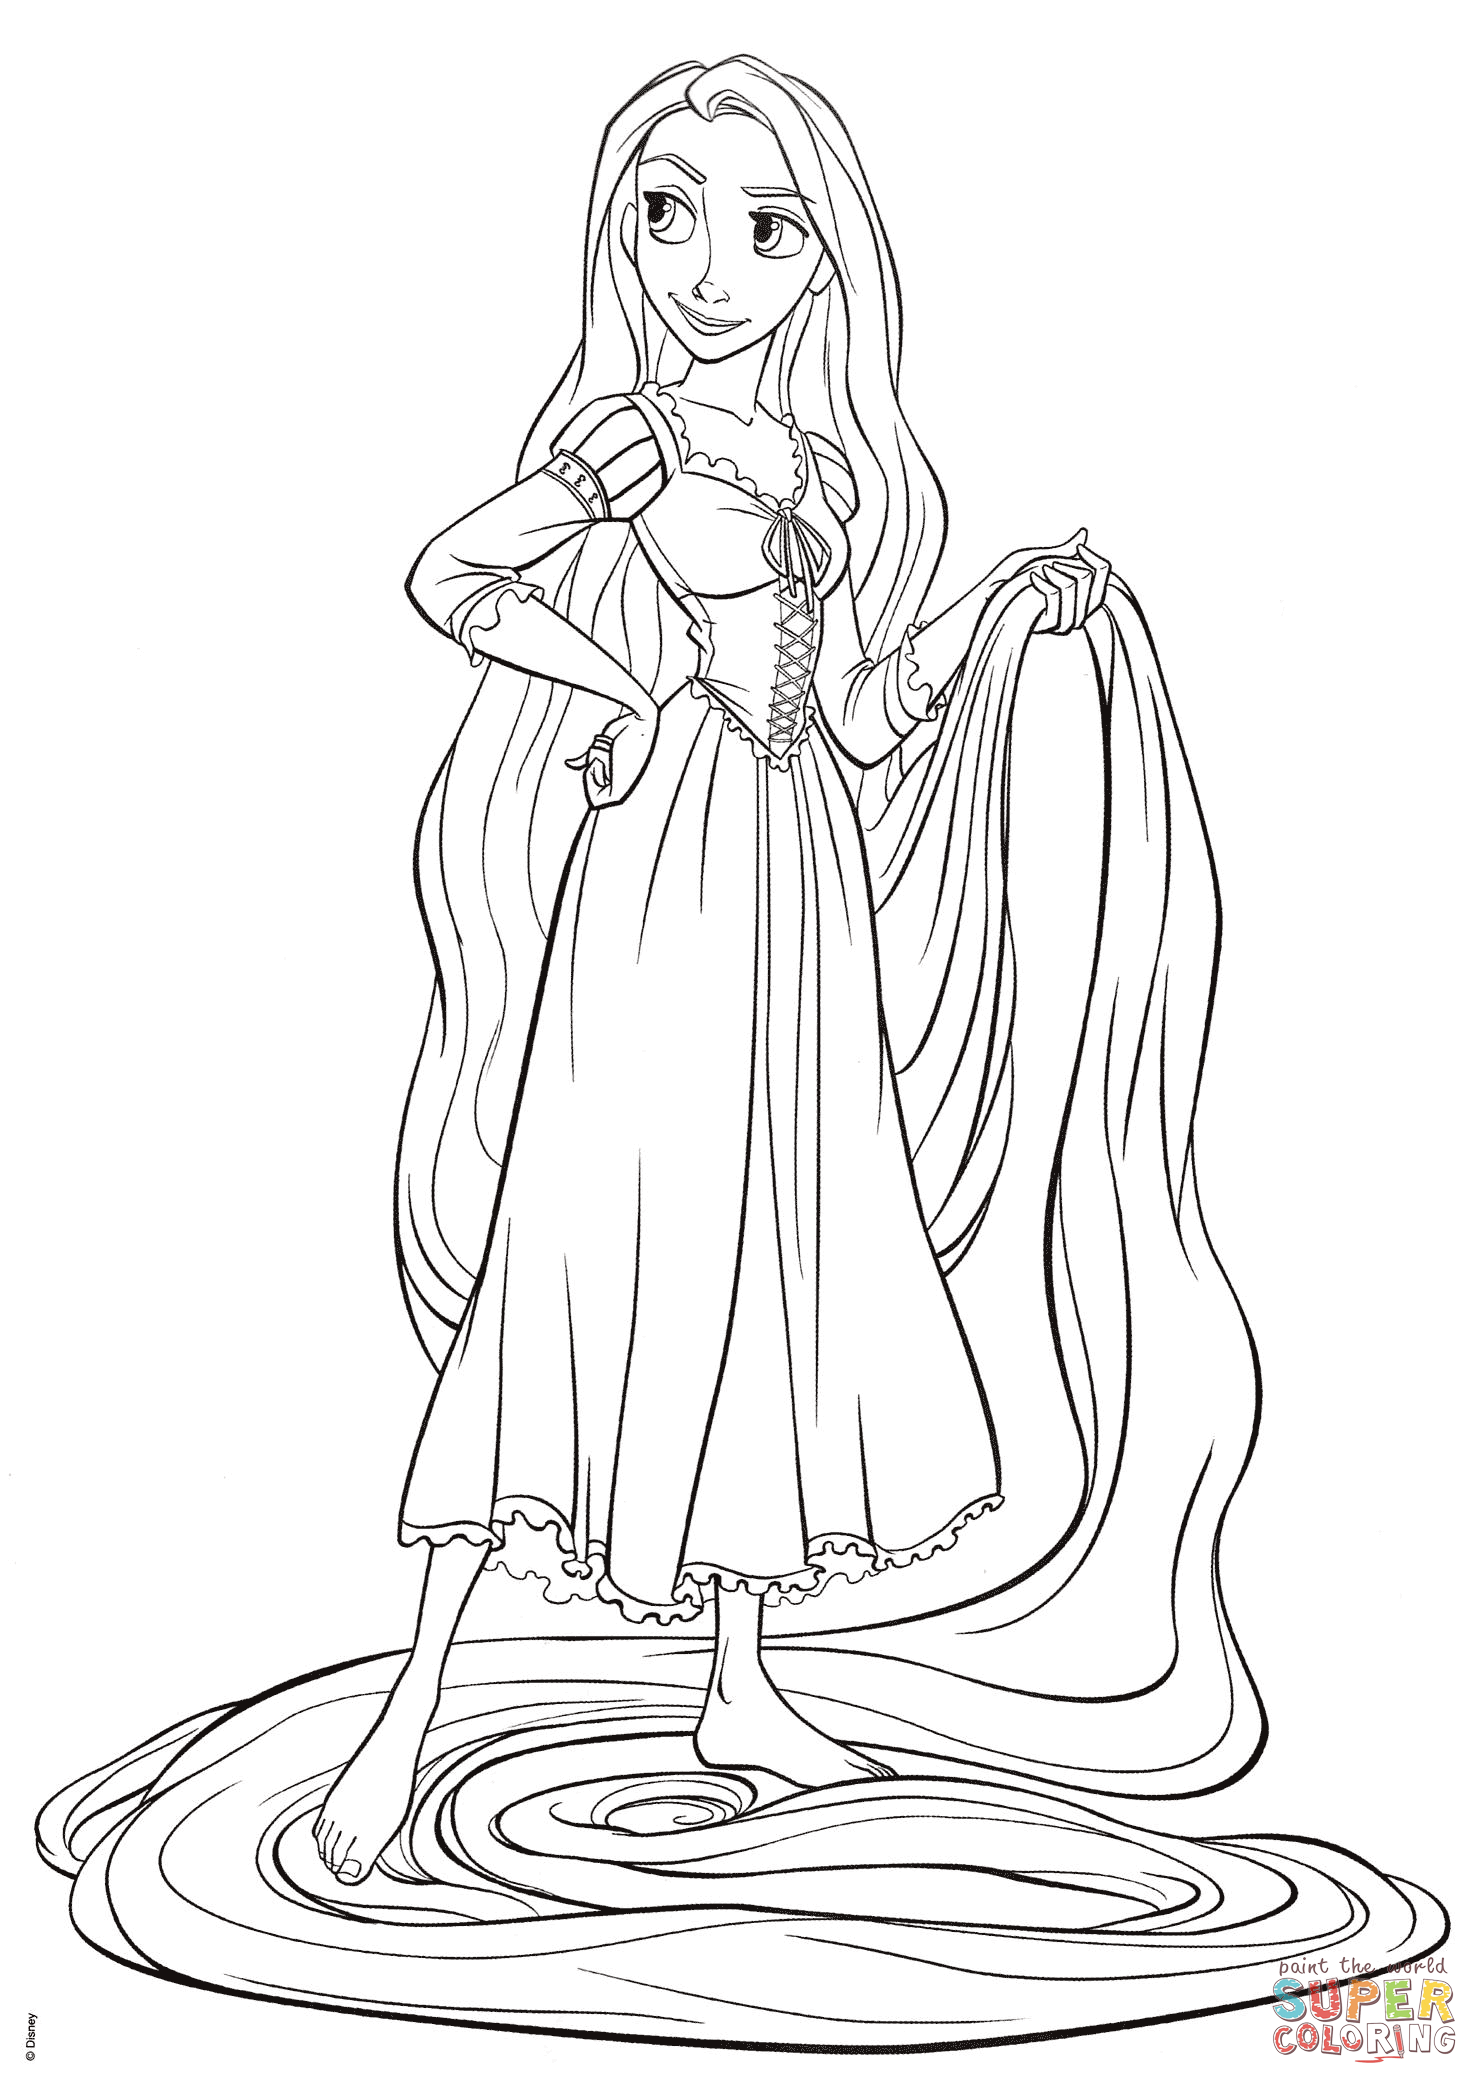 Rapunzel Tower Drawing at GetDrawings | Free download